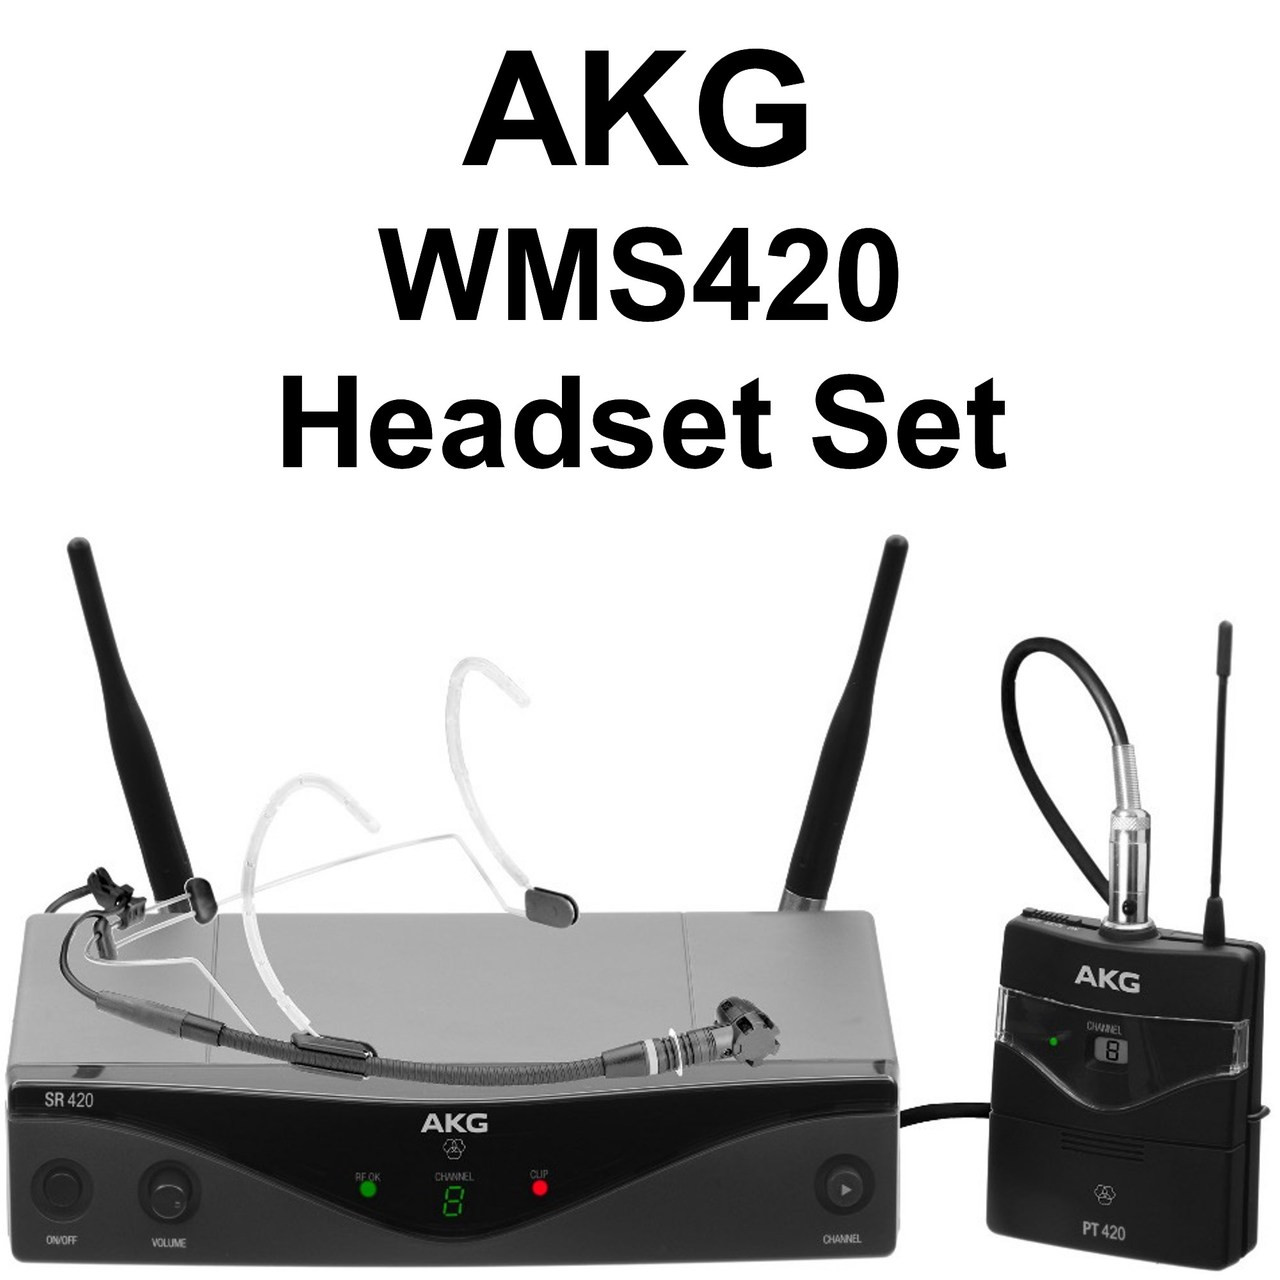 Akg wms420 headset set wireless mic system 10 instant coupon use promo code 10 off - Houseplanscom discount code set ...